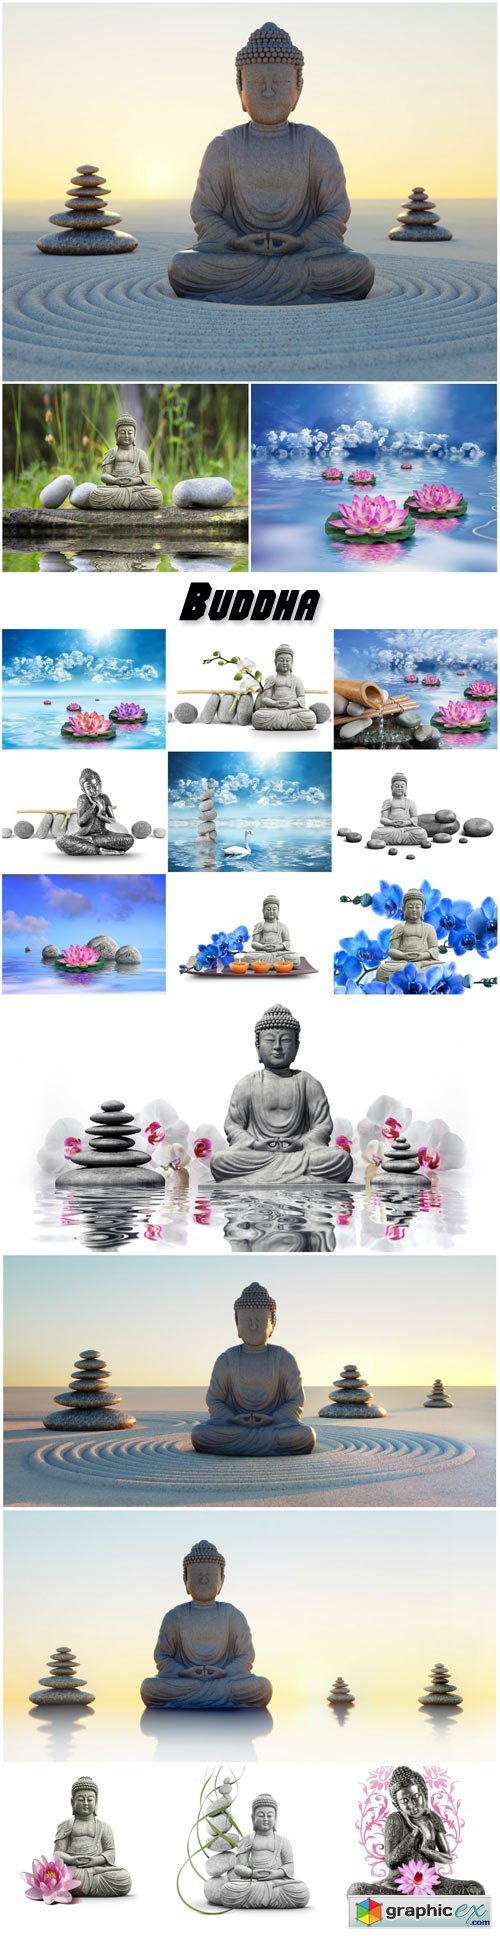 Buddha, spa background with stones and lotus